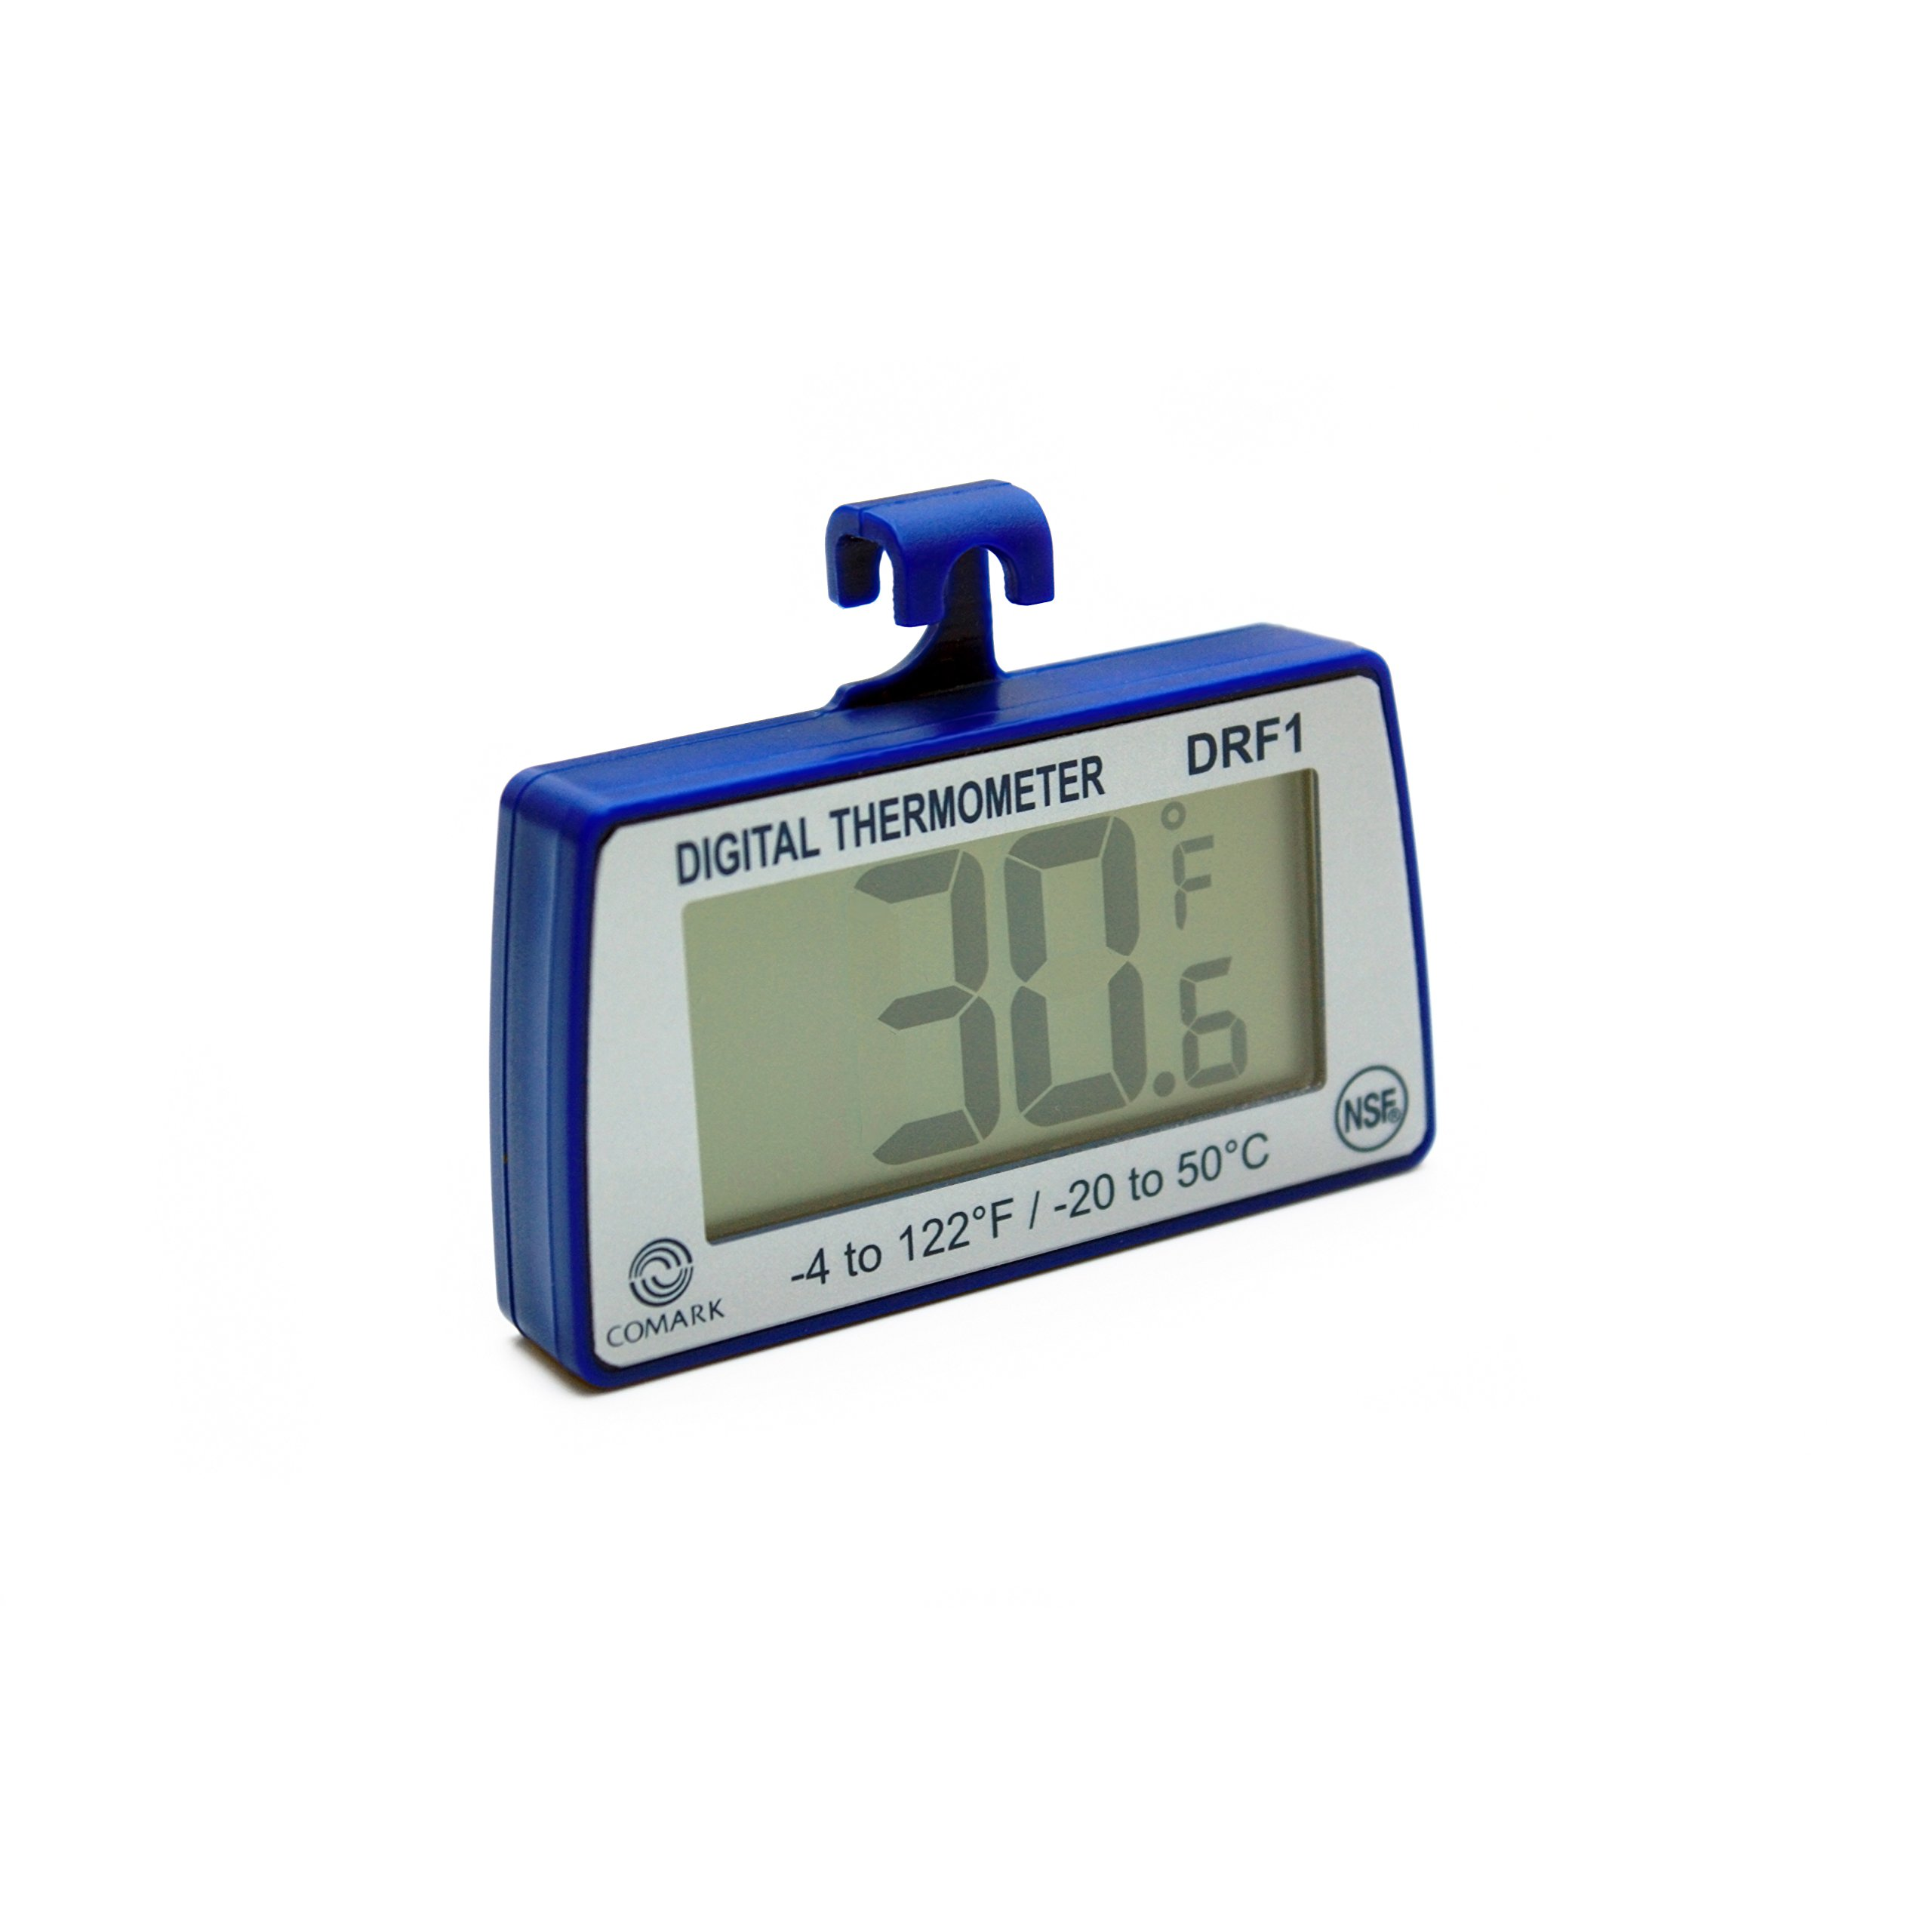 Comark Instruments   DRF1   Digital Refrigerator and Freezer Thermometer